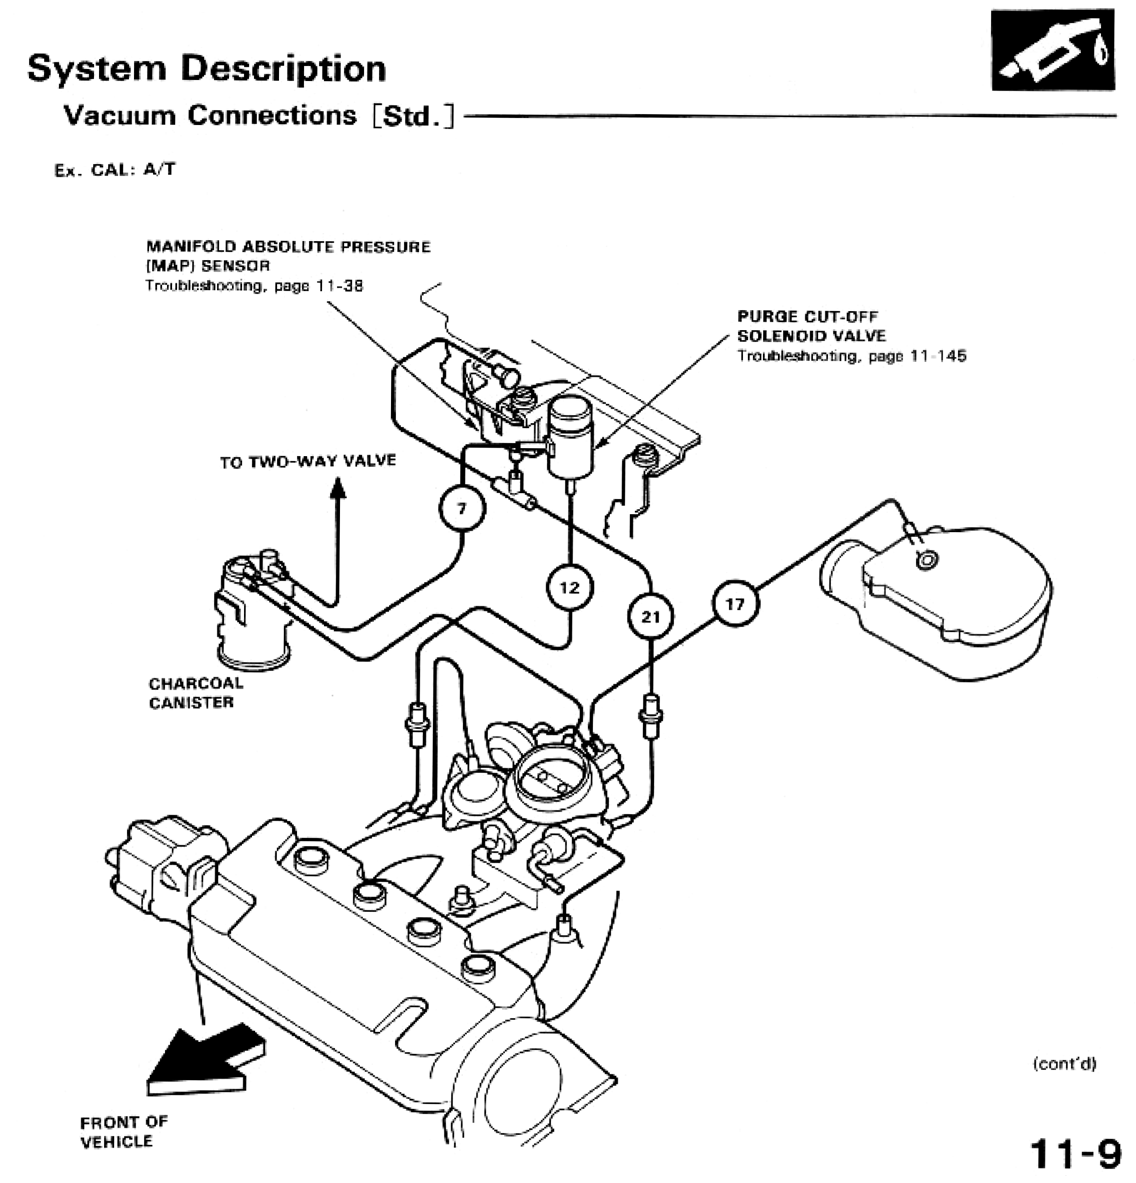 Crx Fog Light Wiring Diagram. prelude fog light wiring